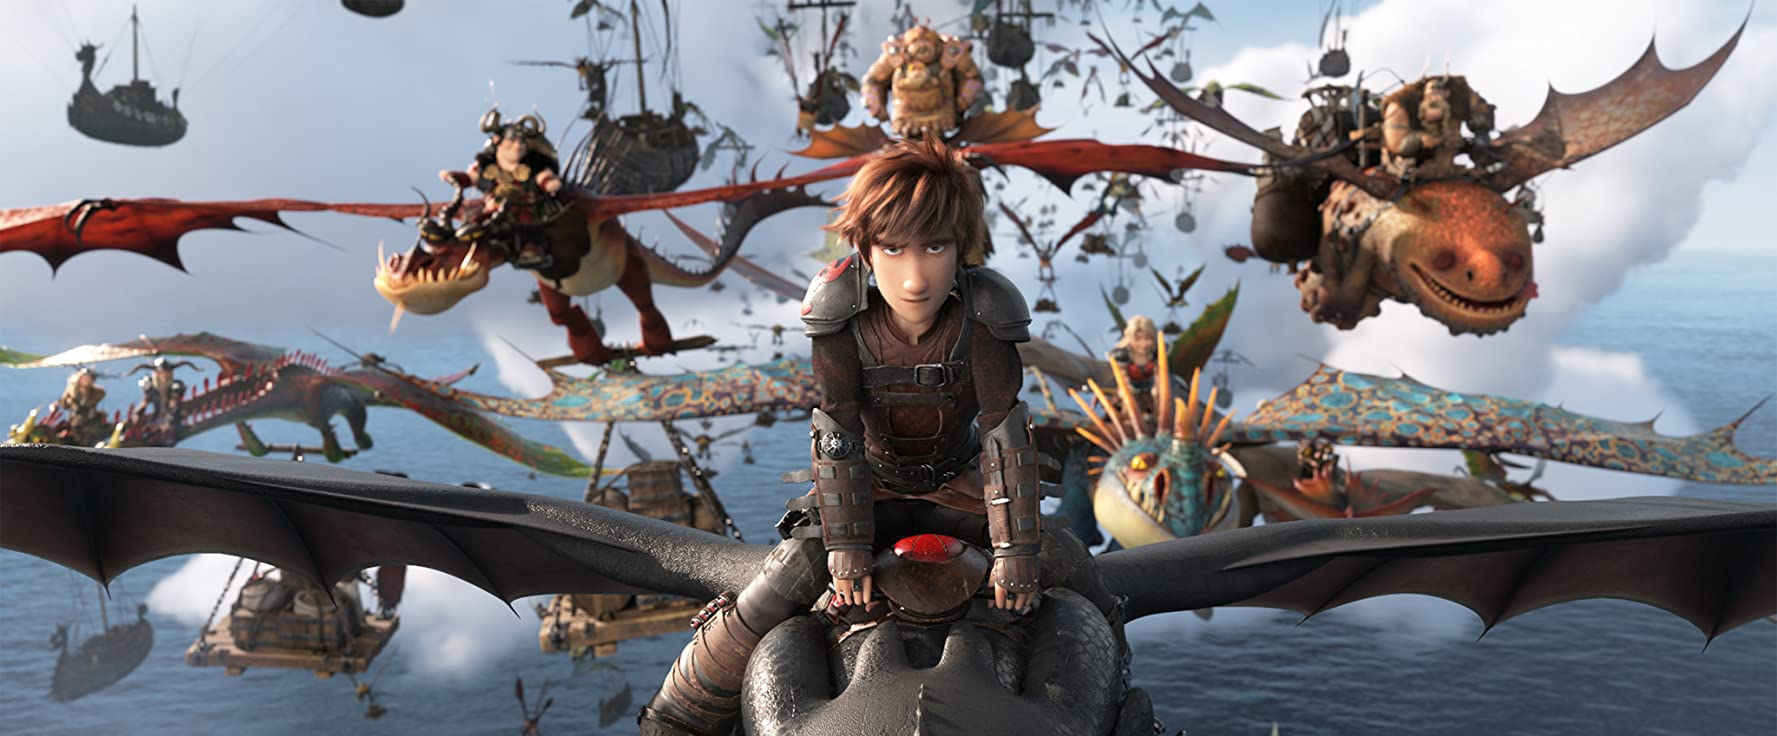 Cate Blanchett, Jay Baruchel, Craig Ferguson, America Ferrera, Kristen Wiig, Jonah Hill, Christopher Mintz-Plasse, Kit Harington, and Justin Rupple in How to Train Your Dragon: The Hidden World (2019)